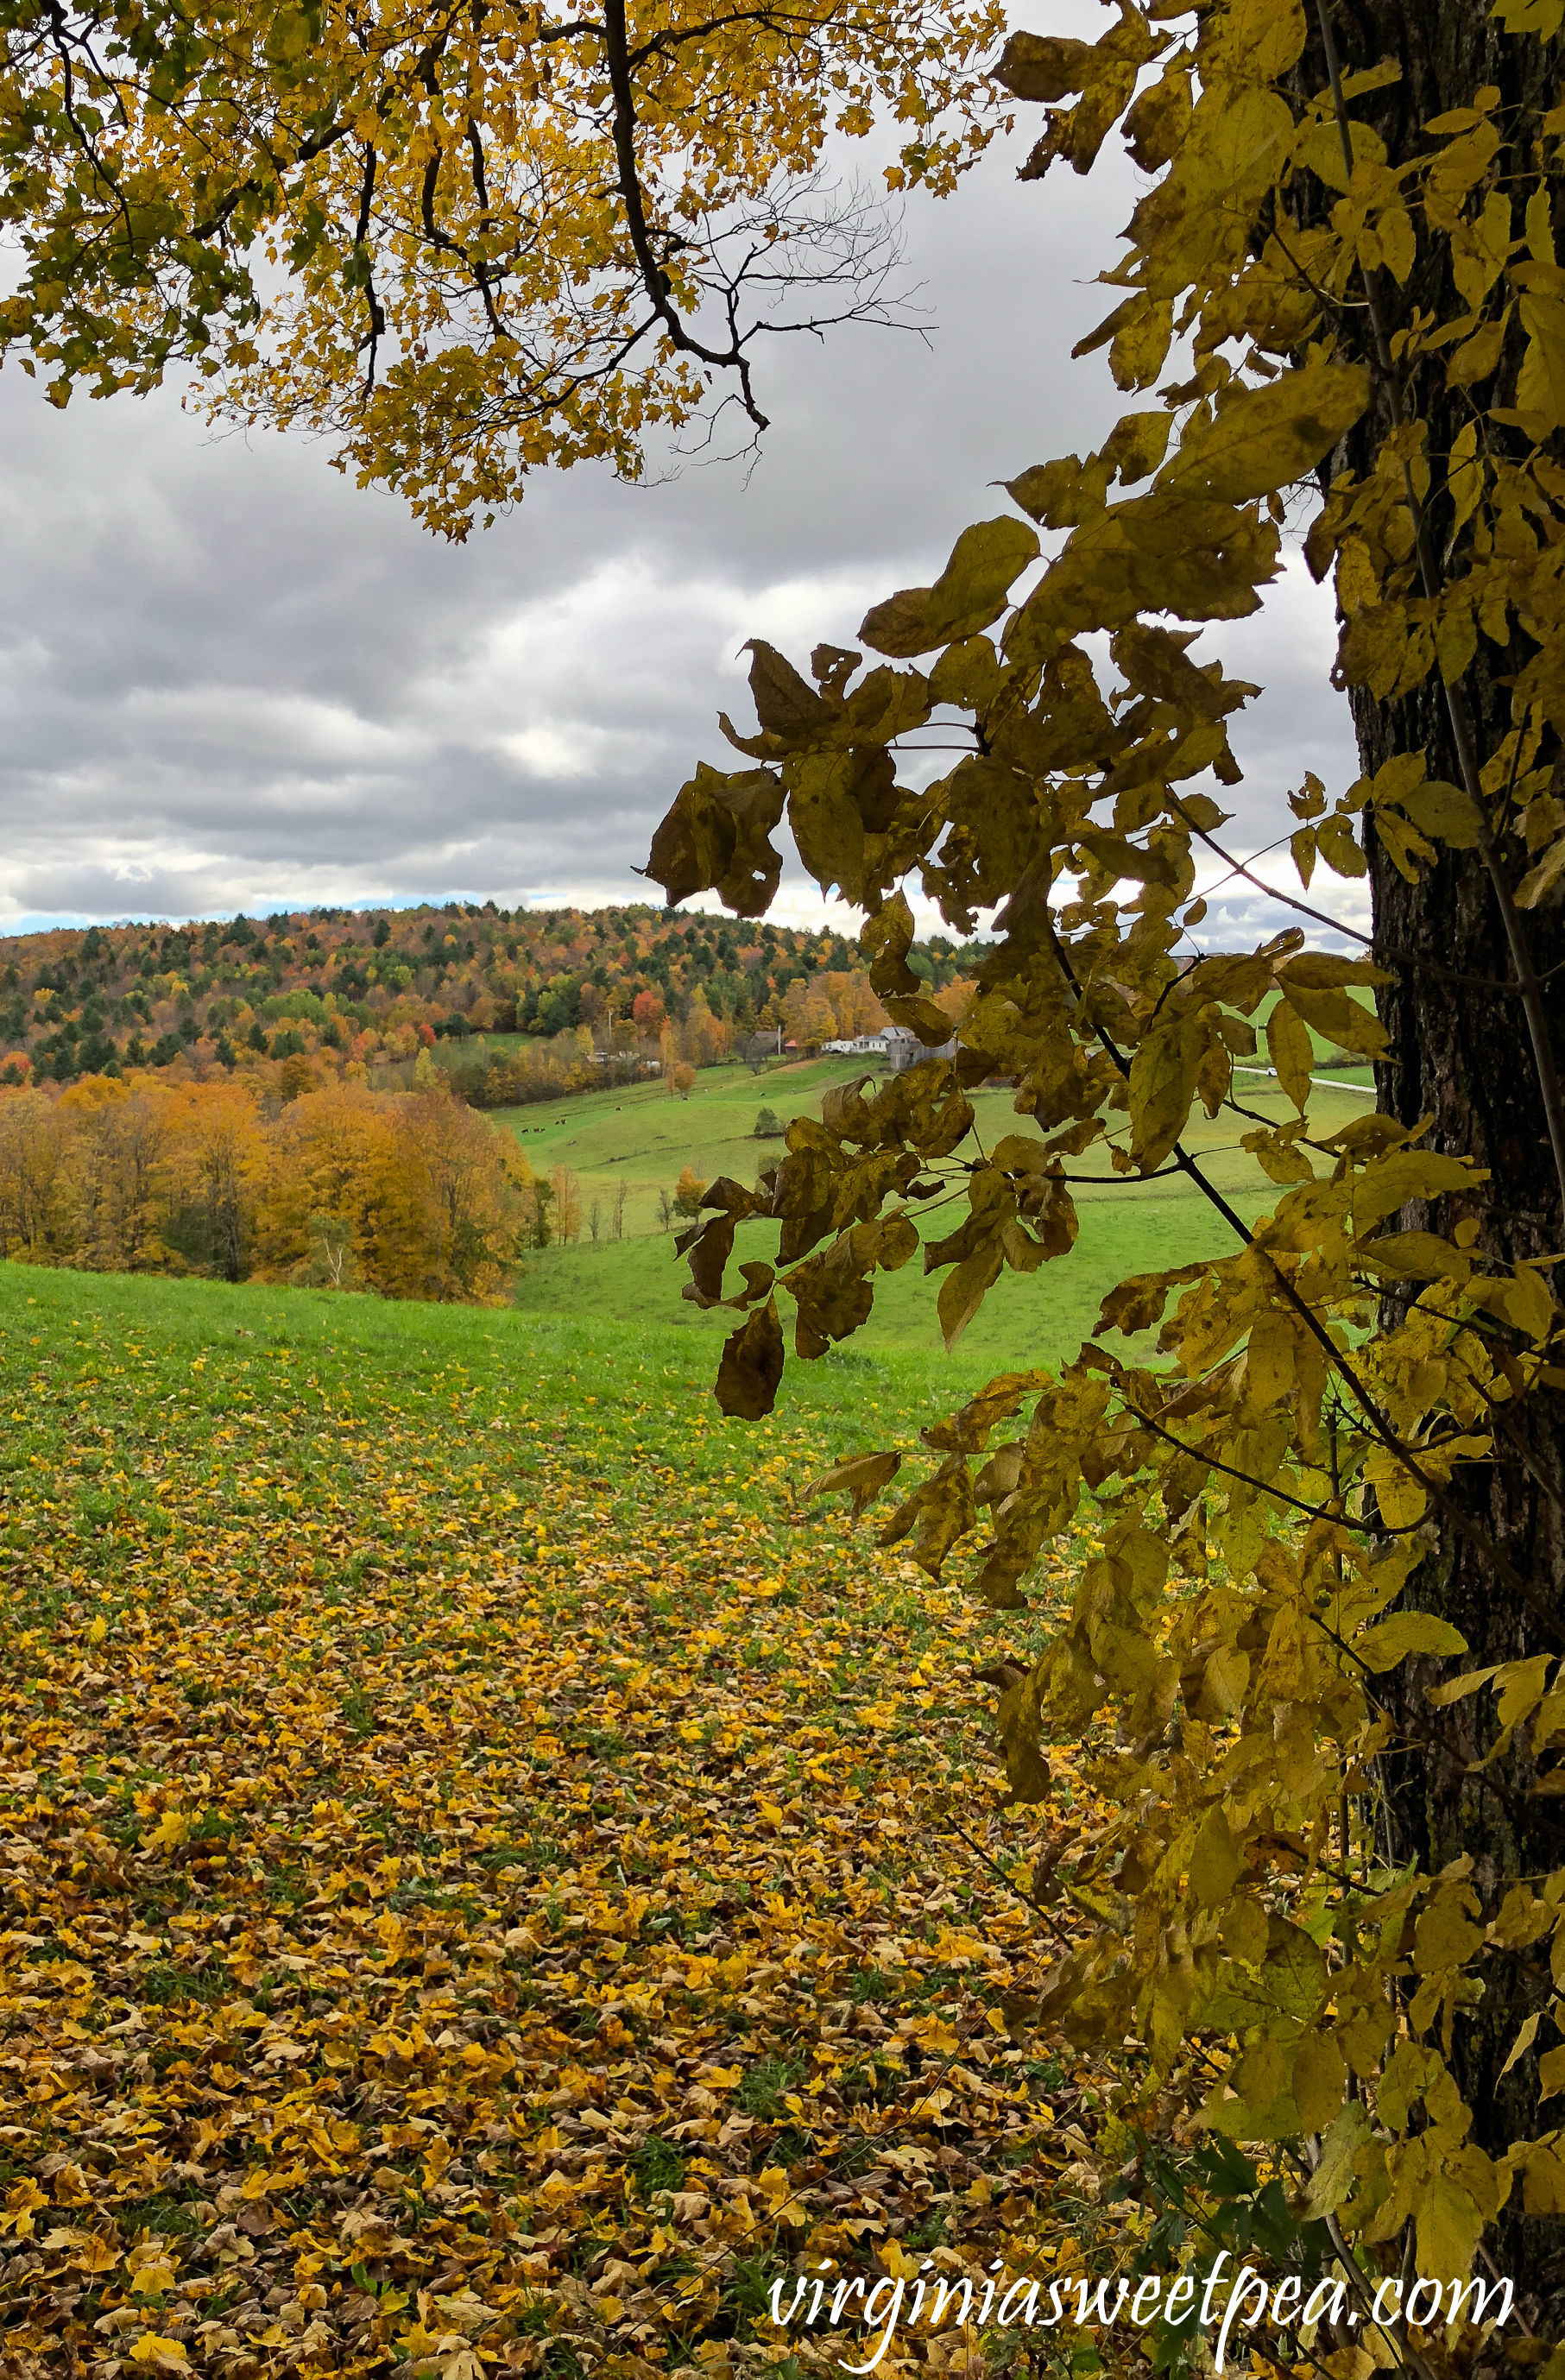 The Jenny Farm in Vermont #vermont #fallinvermont #fall